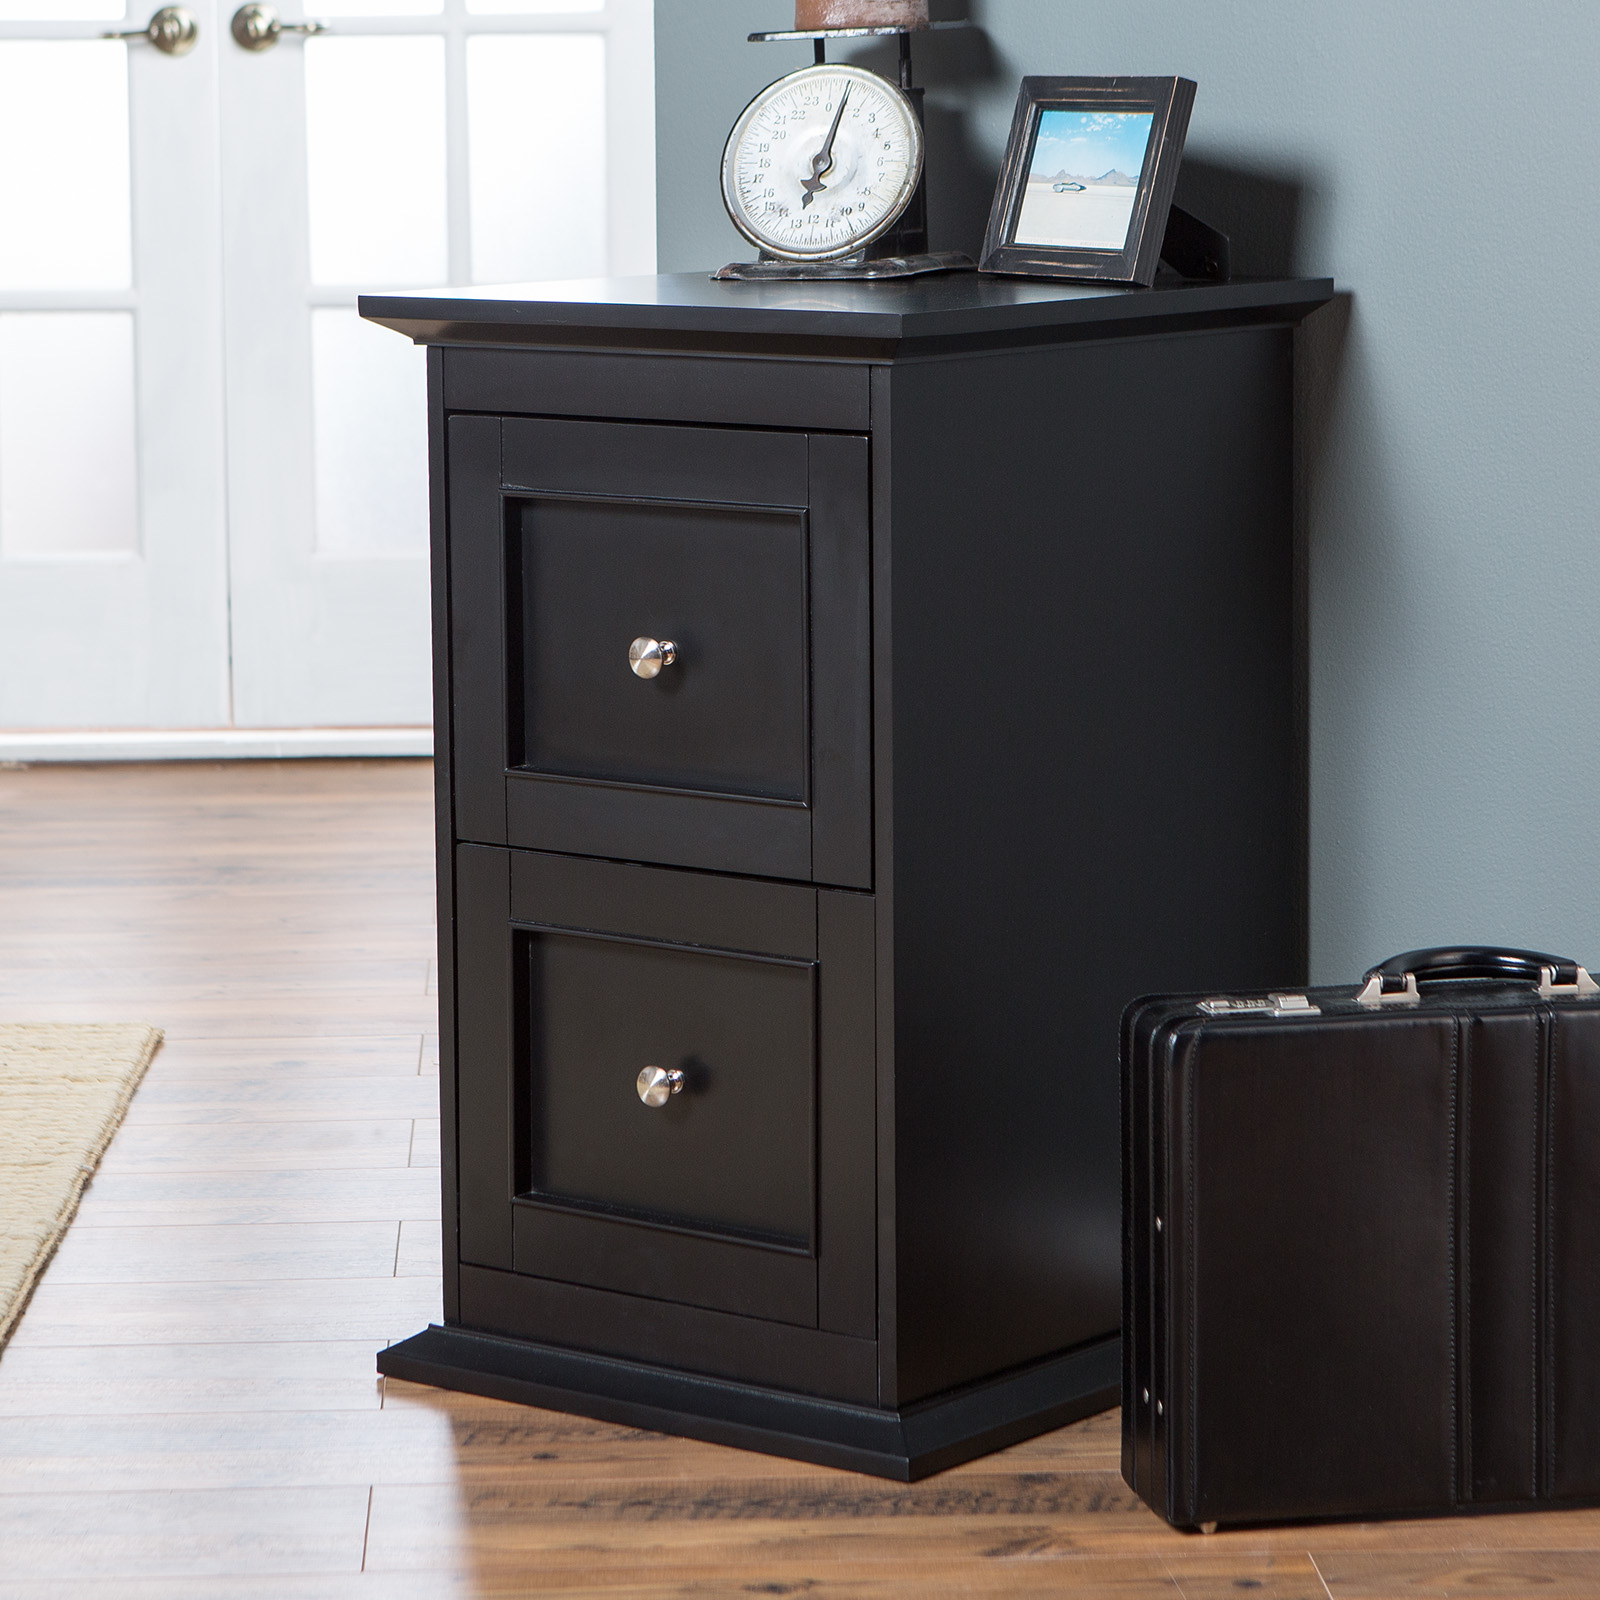 Belham Living Hampton 2 Drawer Wood File Cabinet   Black